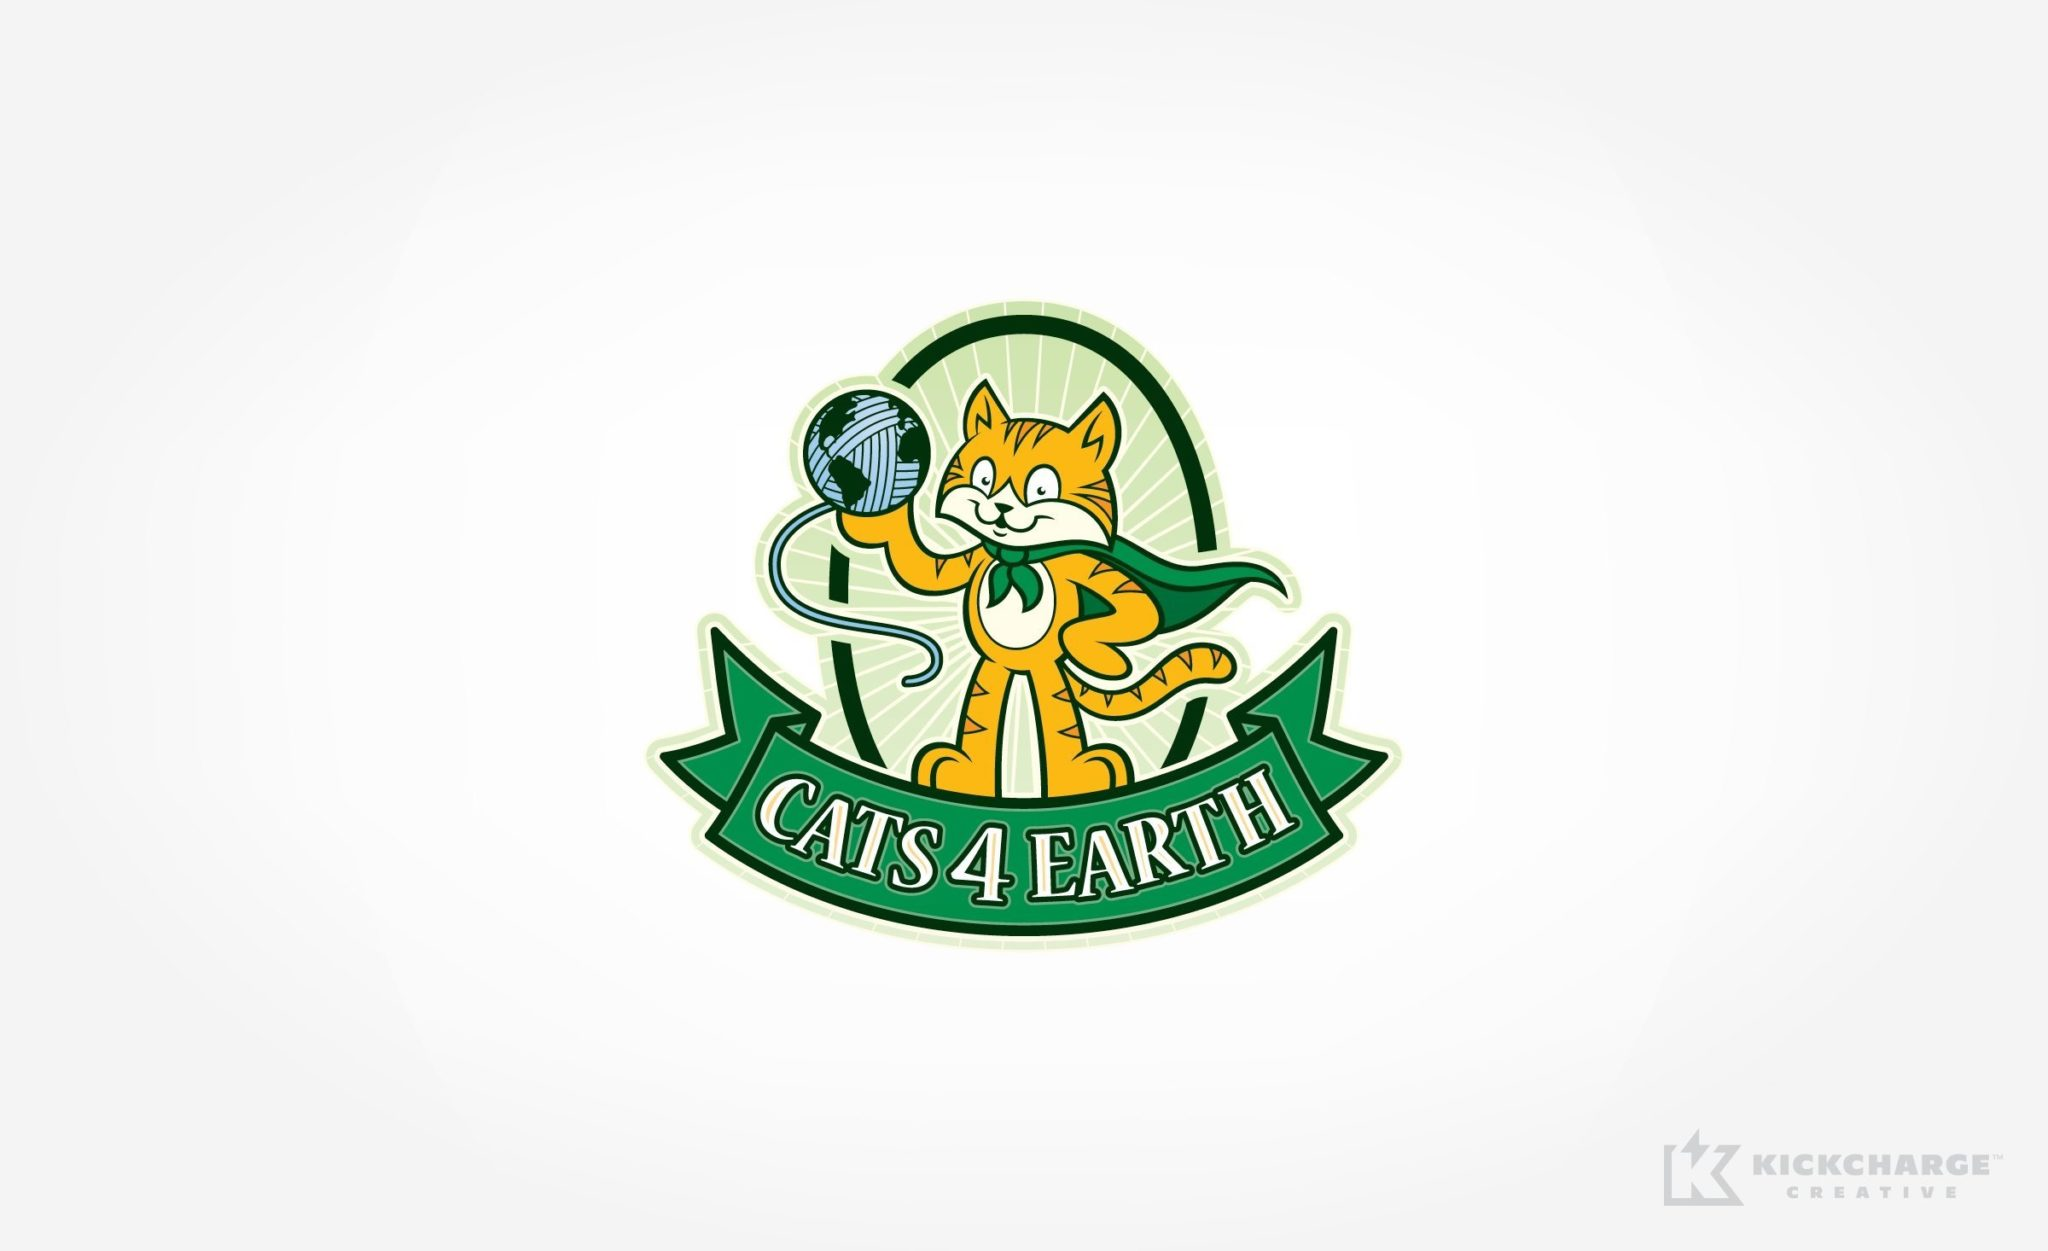 Logo design used for packaging for a cat litter manufacturer in Lehigh Valley, PA.